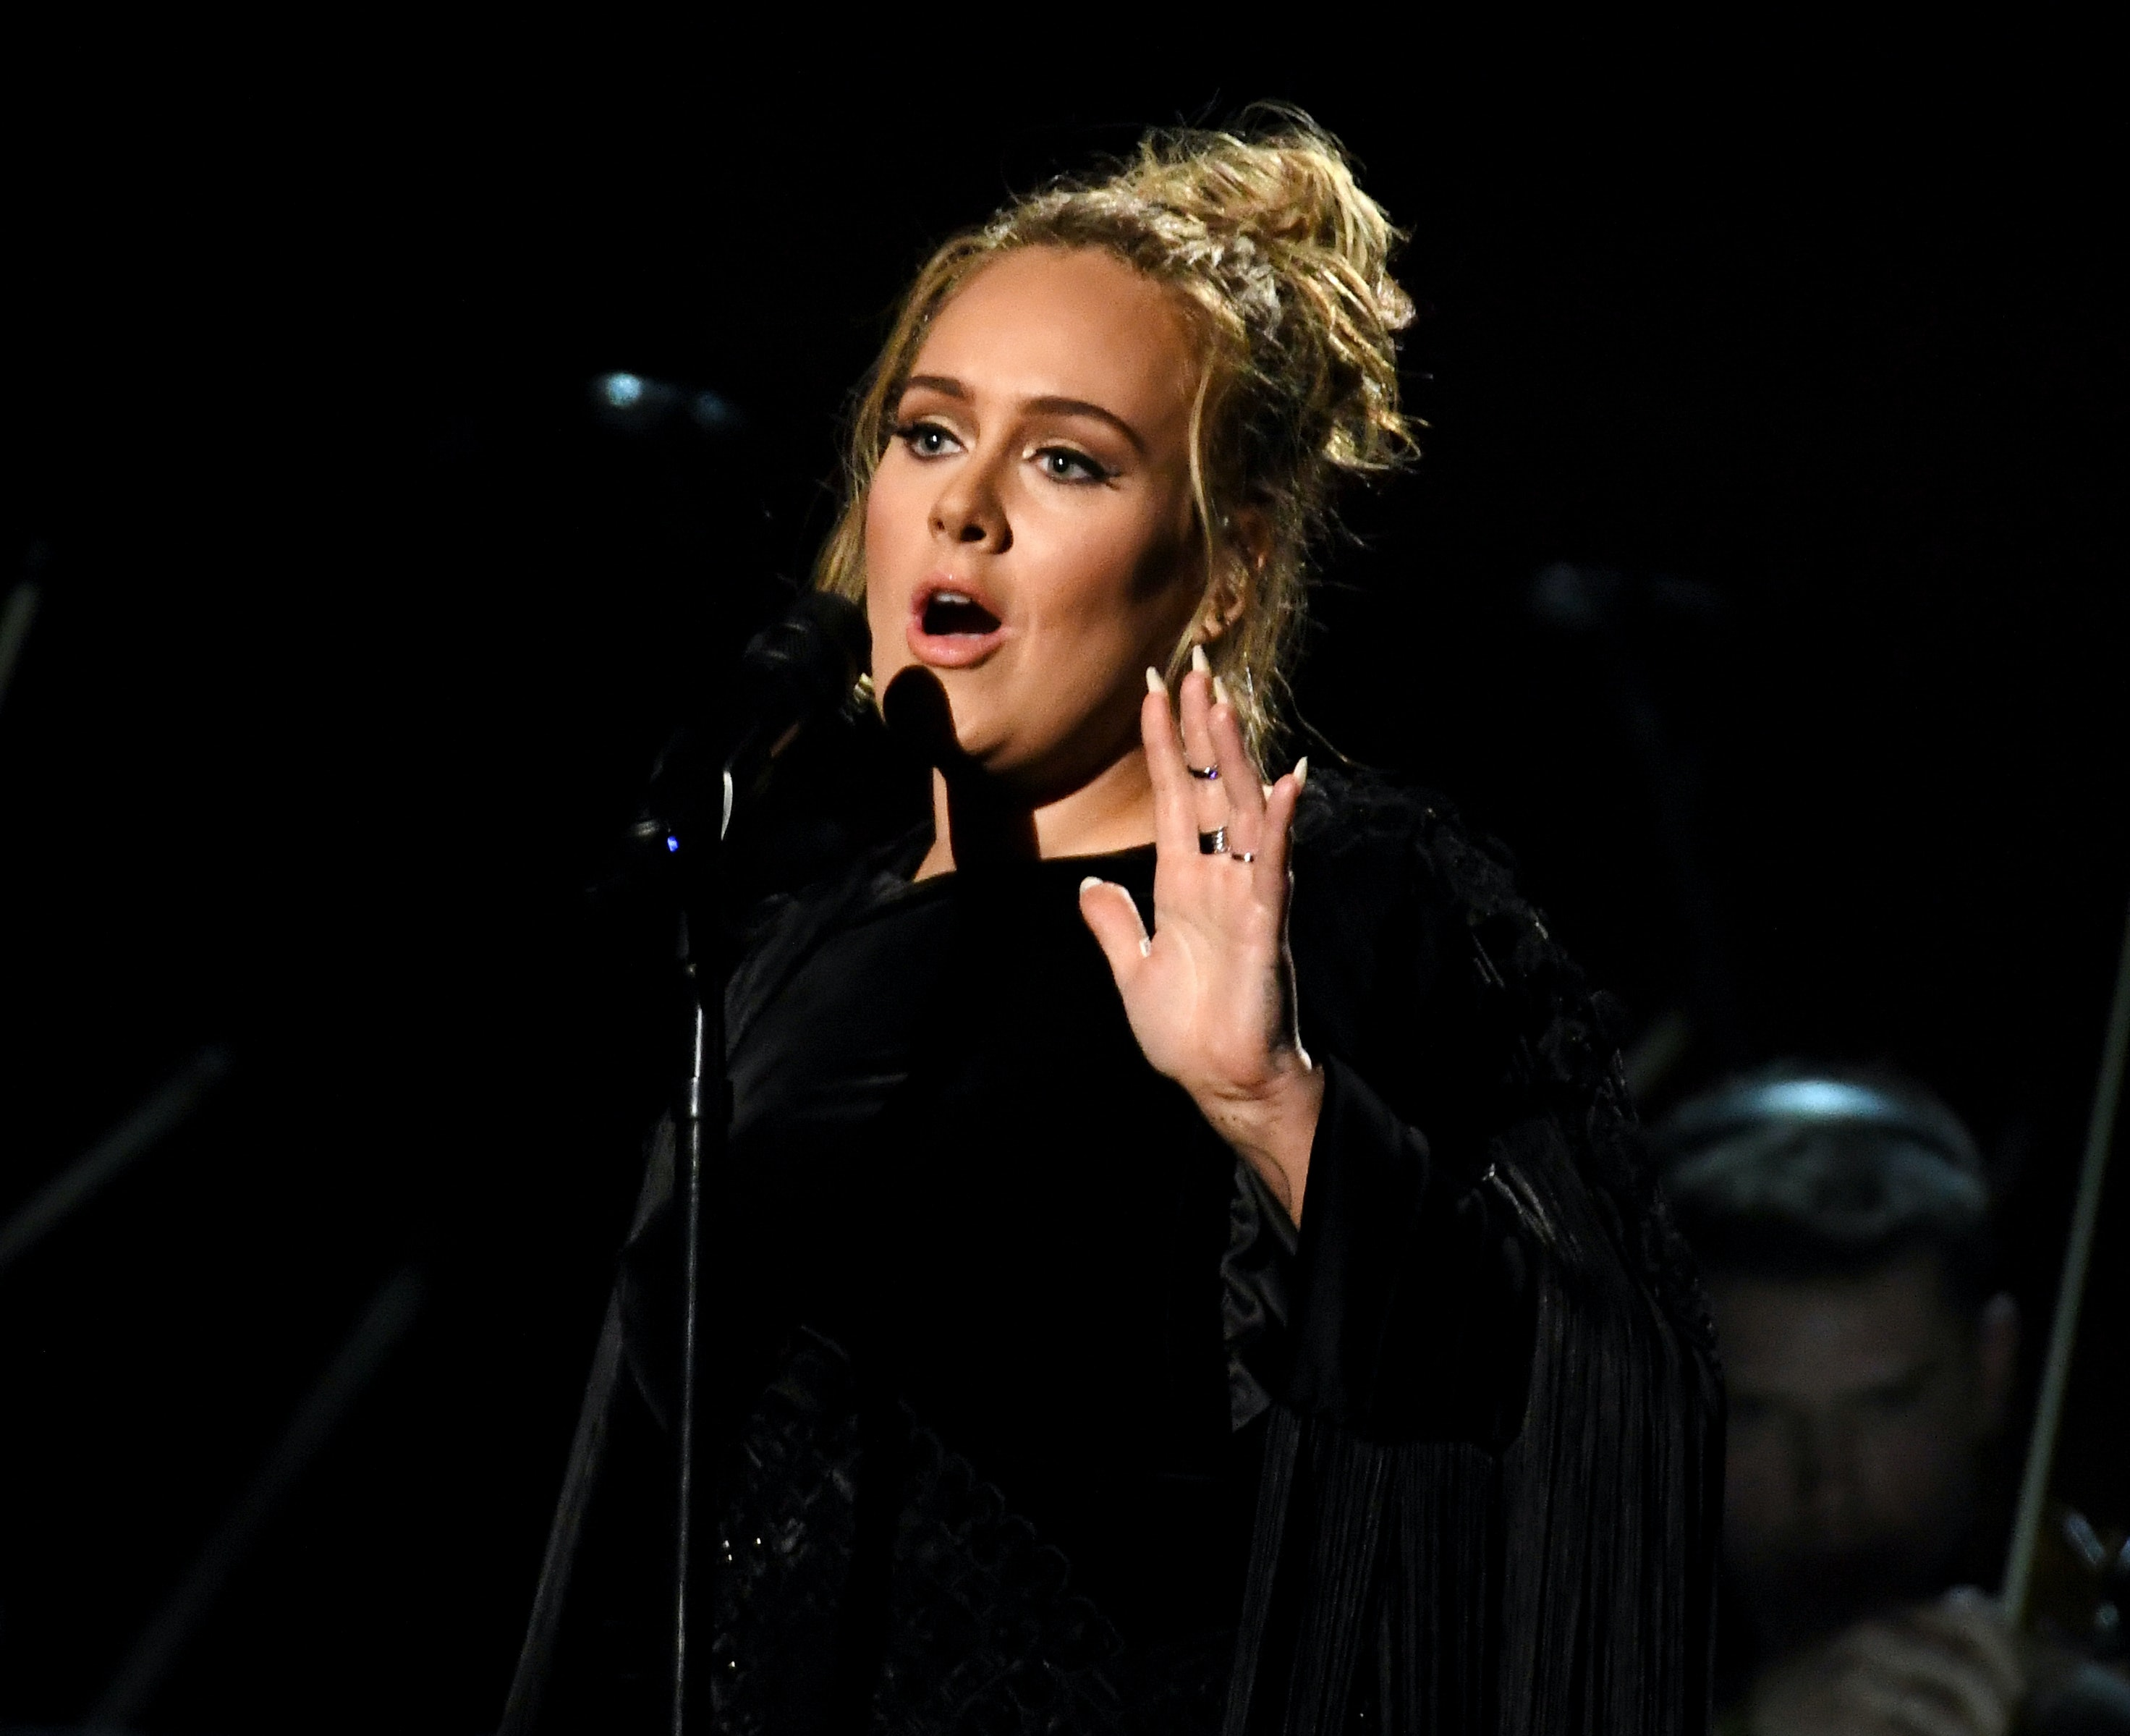 When Is Adele's Next Album Out? 2019 Is Set To Be Huge For